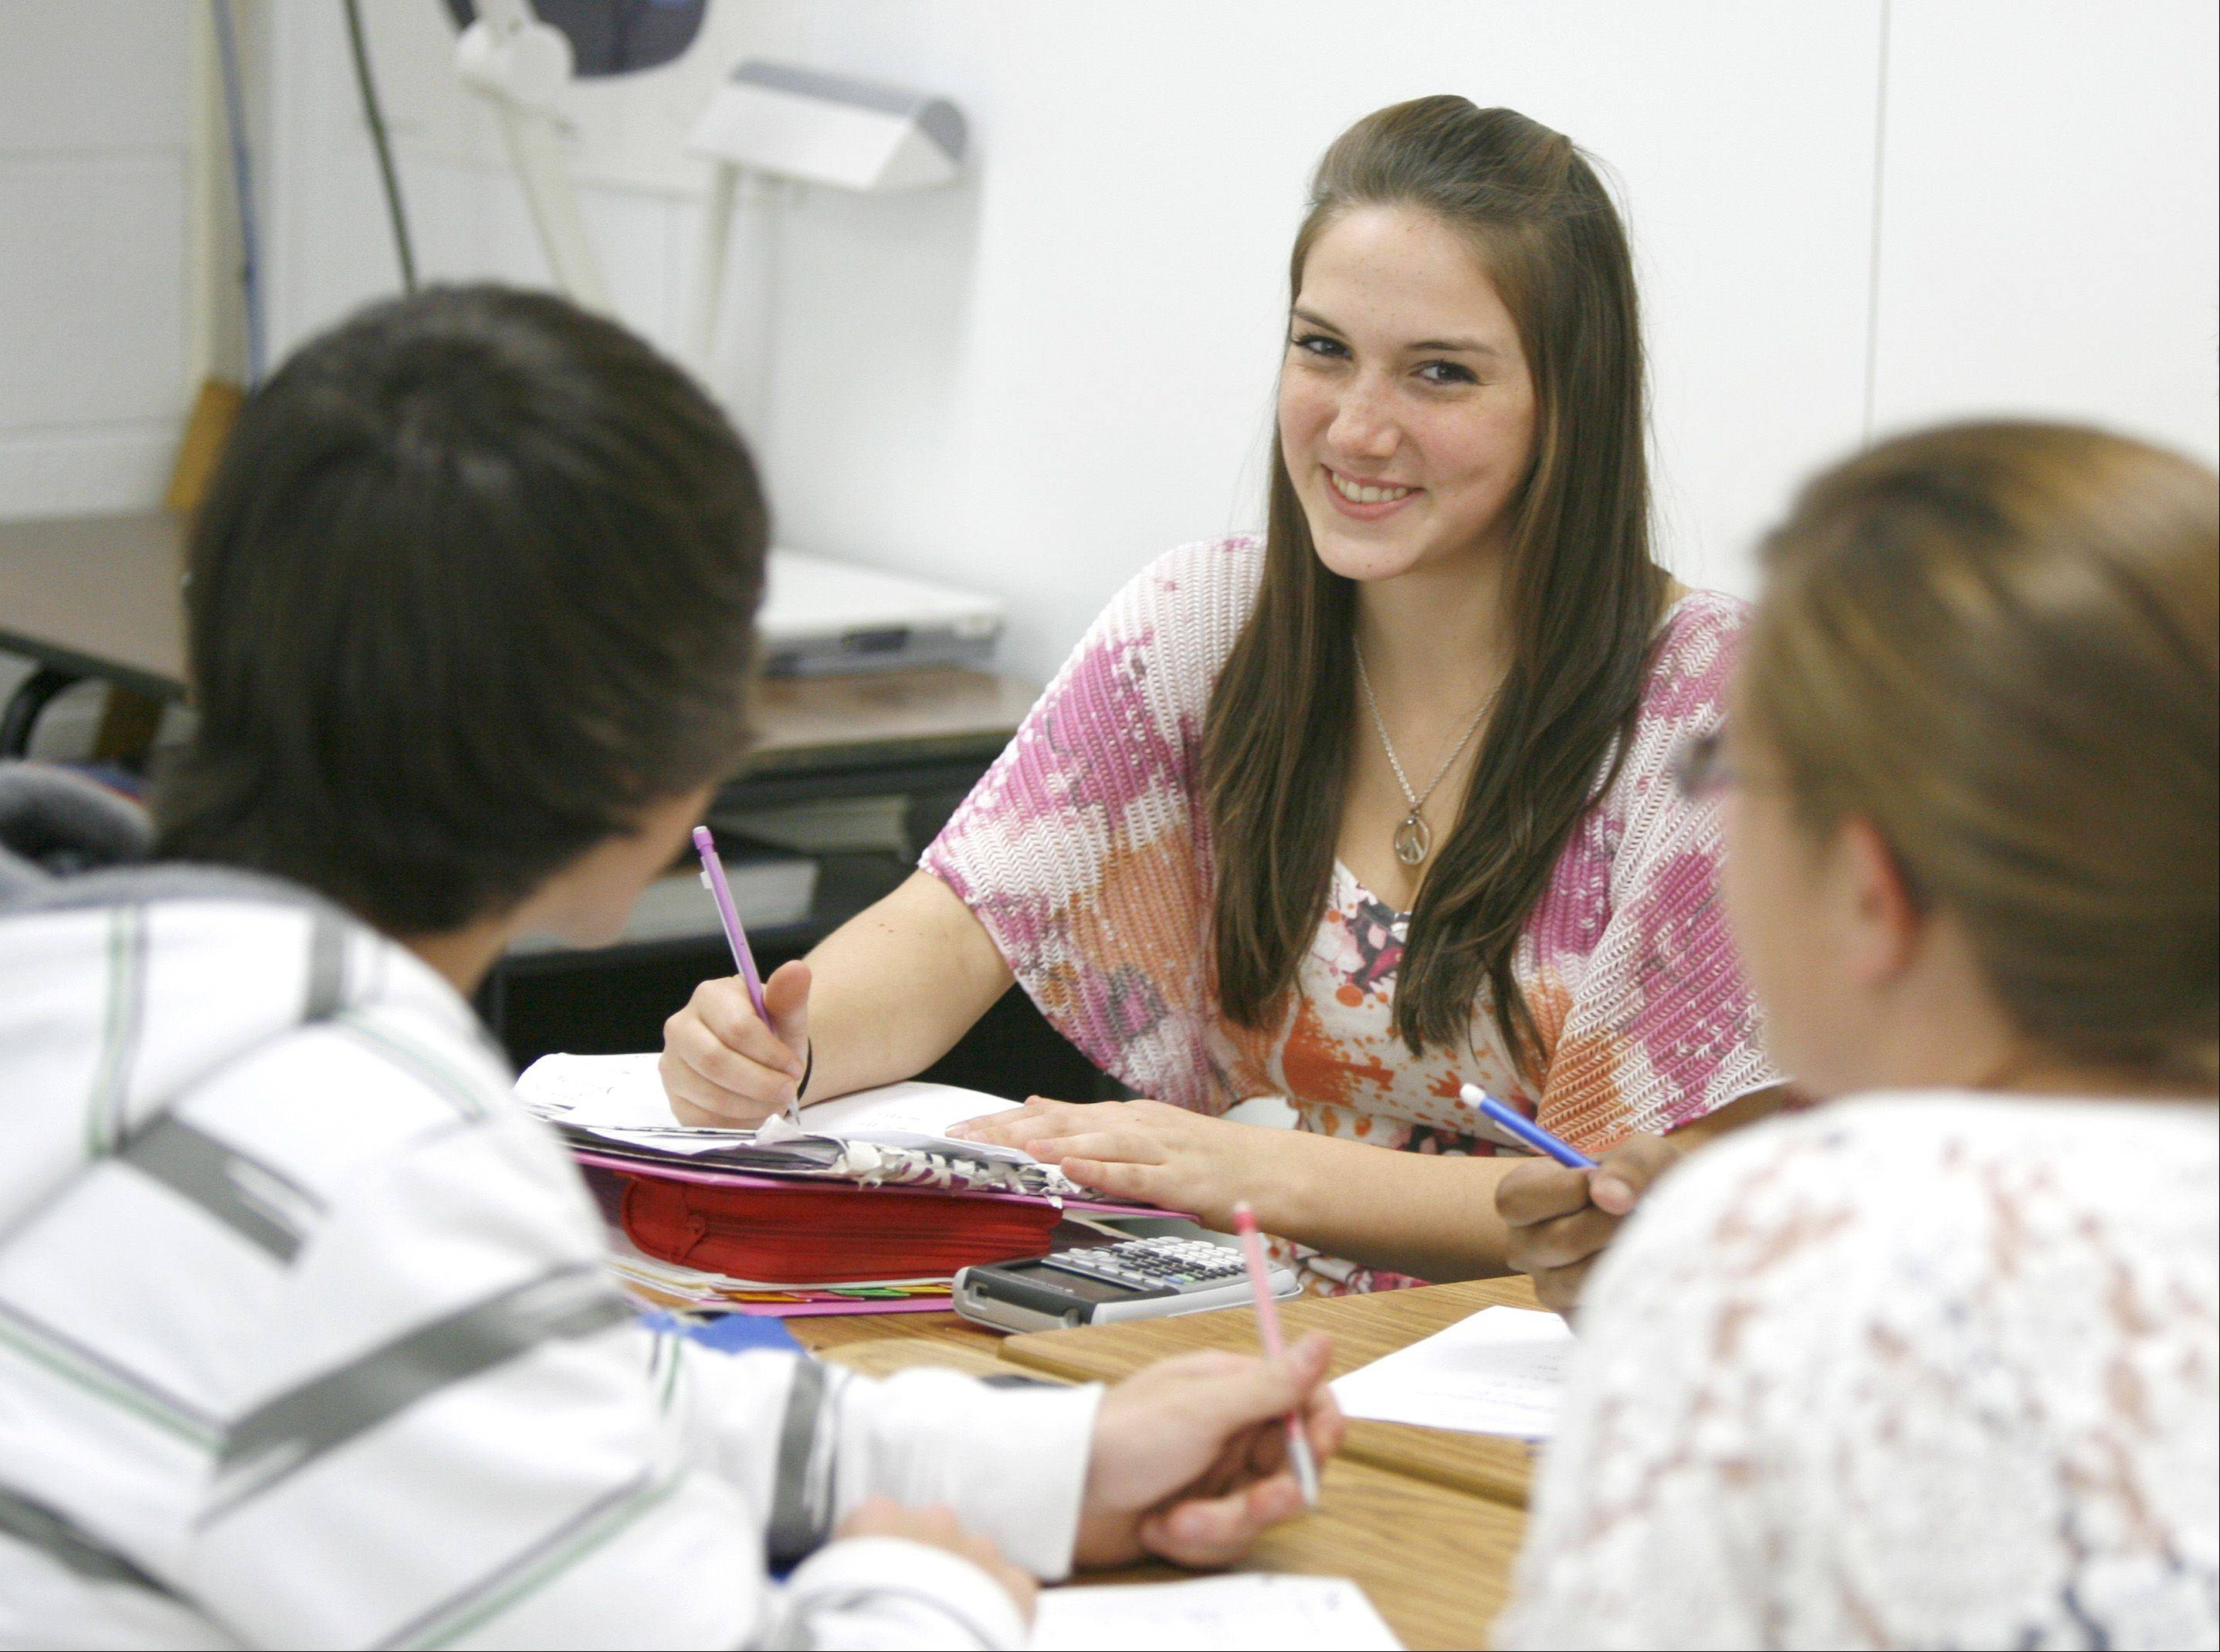 Rachel Birkley, center, solves a problem during Mike Coit's honors pre-calculus class at Lisle Senior High School, where average composite ACT scores jumped from 22.0 in 2010 to 23.1 this year.